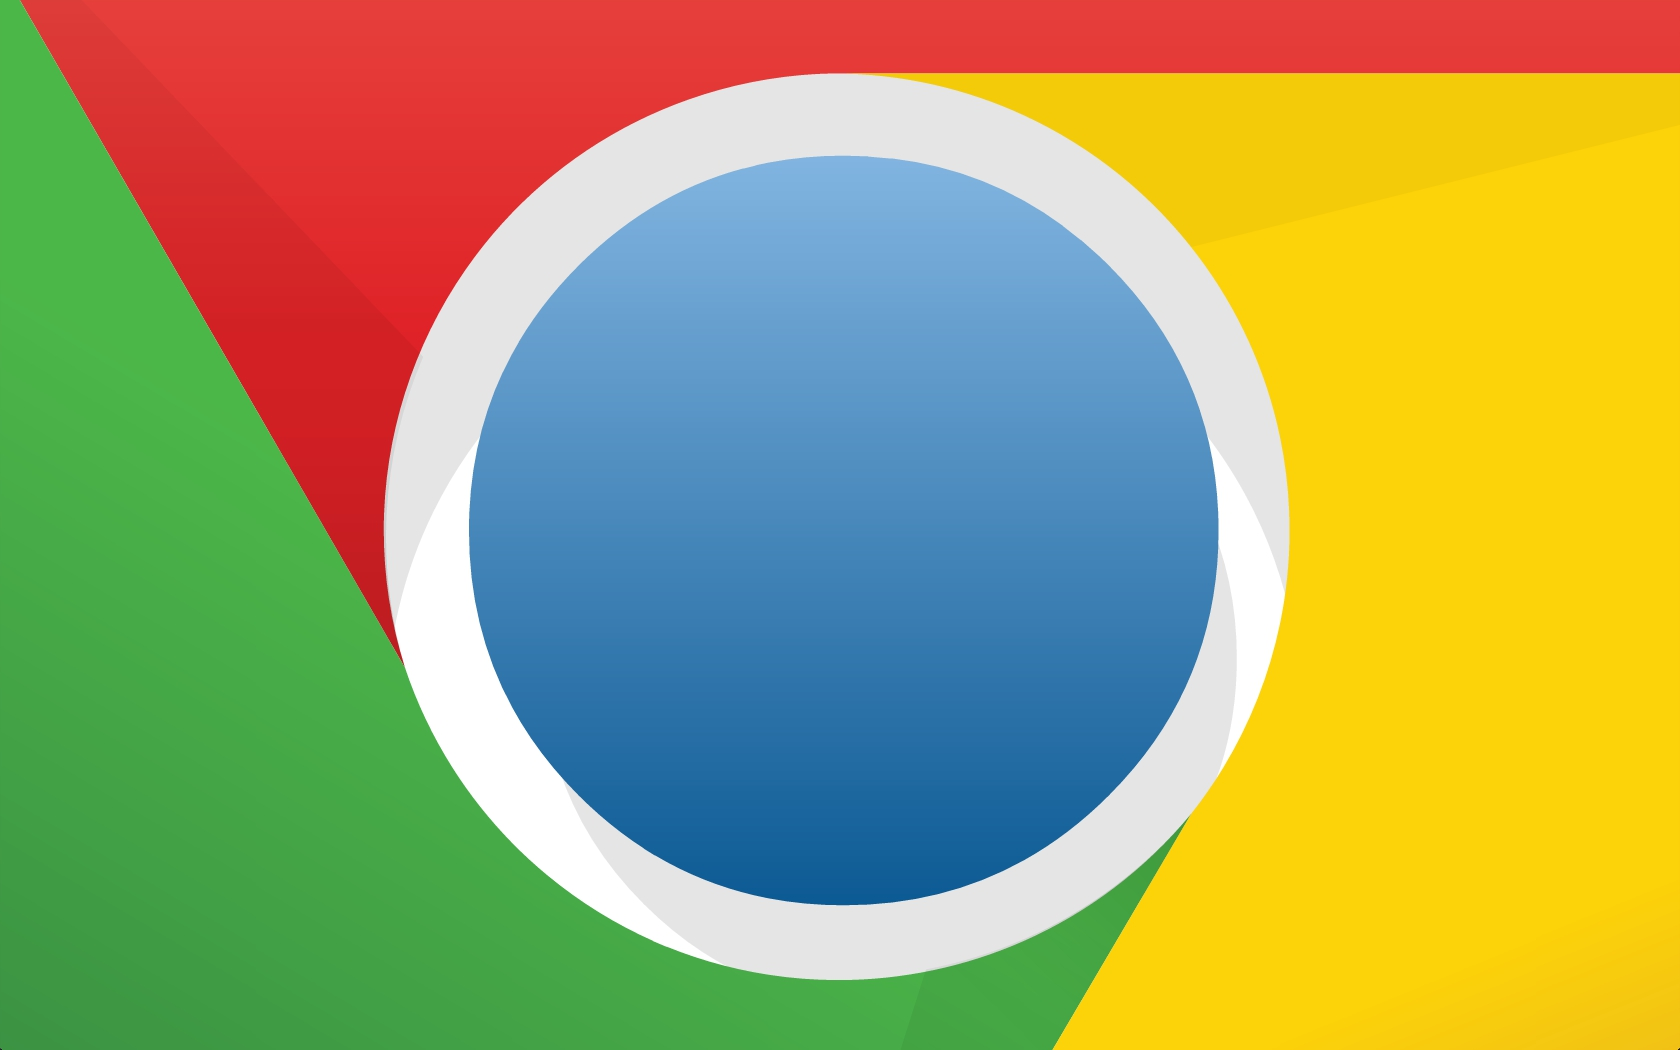 You can now download Google Chrome beta and start muting autoplay videos